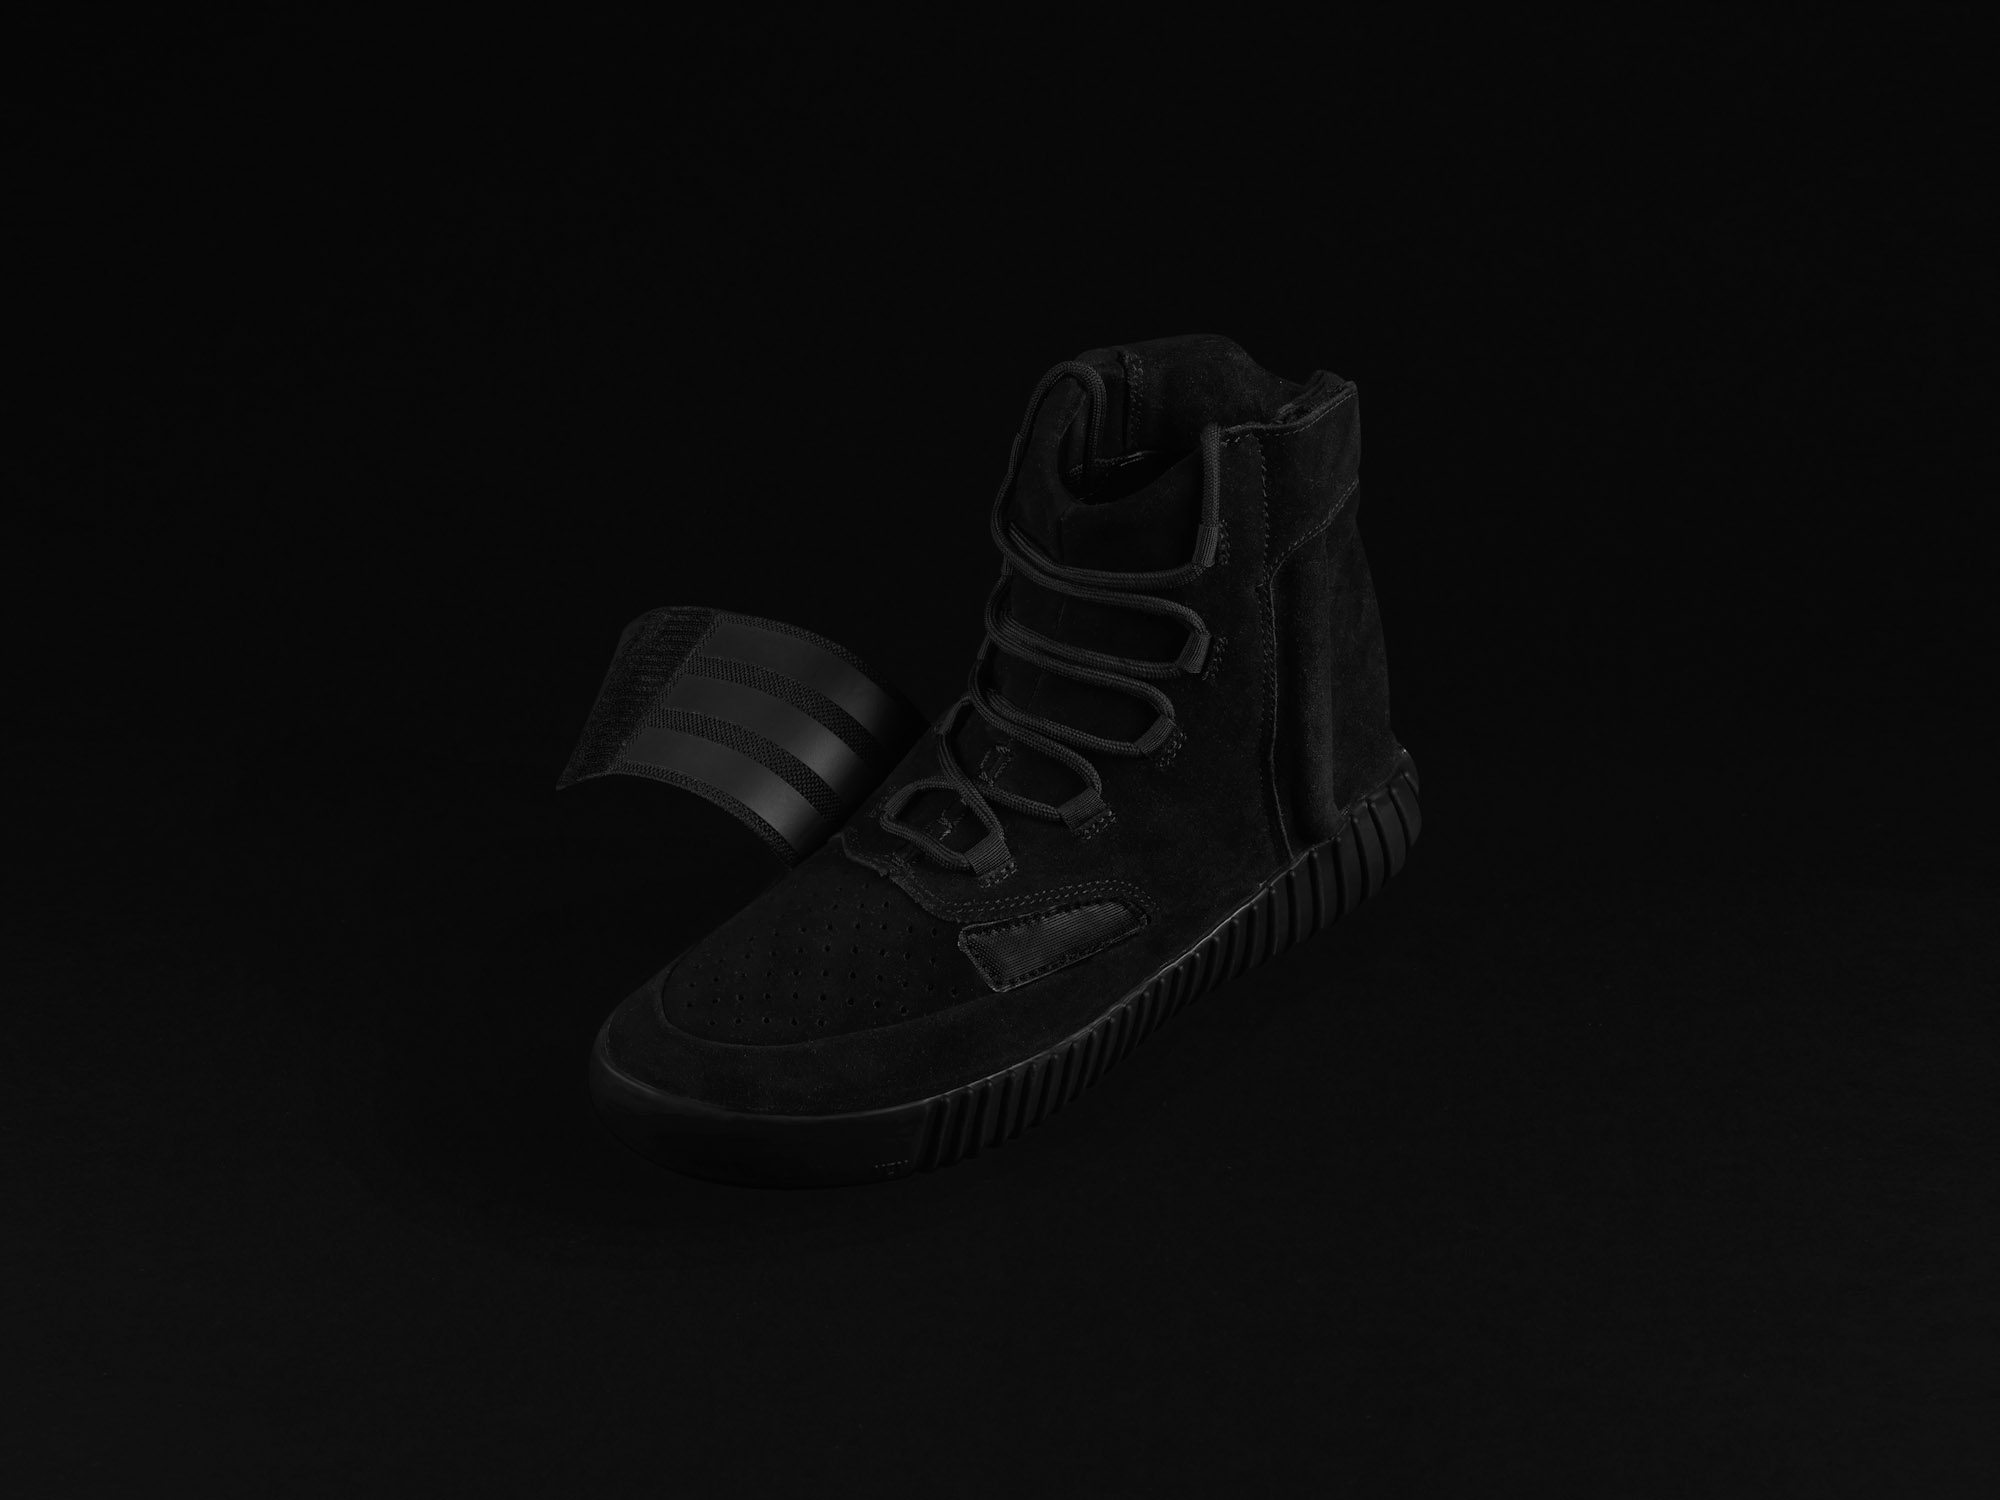 Yeezy Boost 350 All Black 7